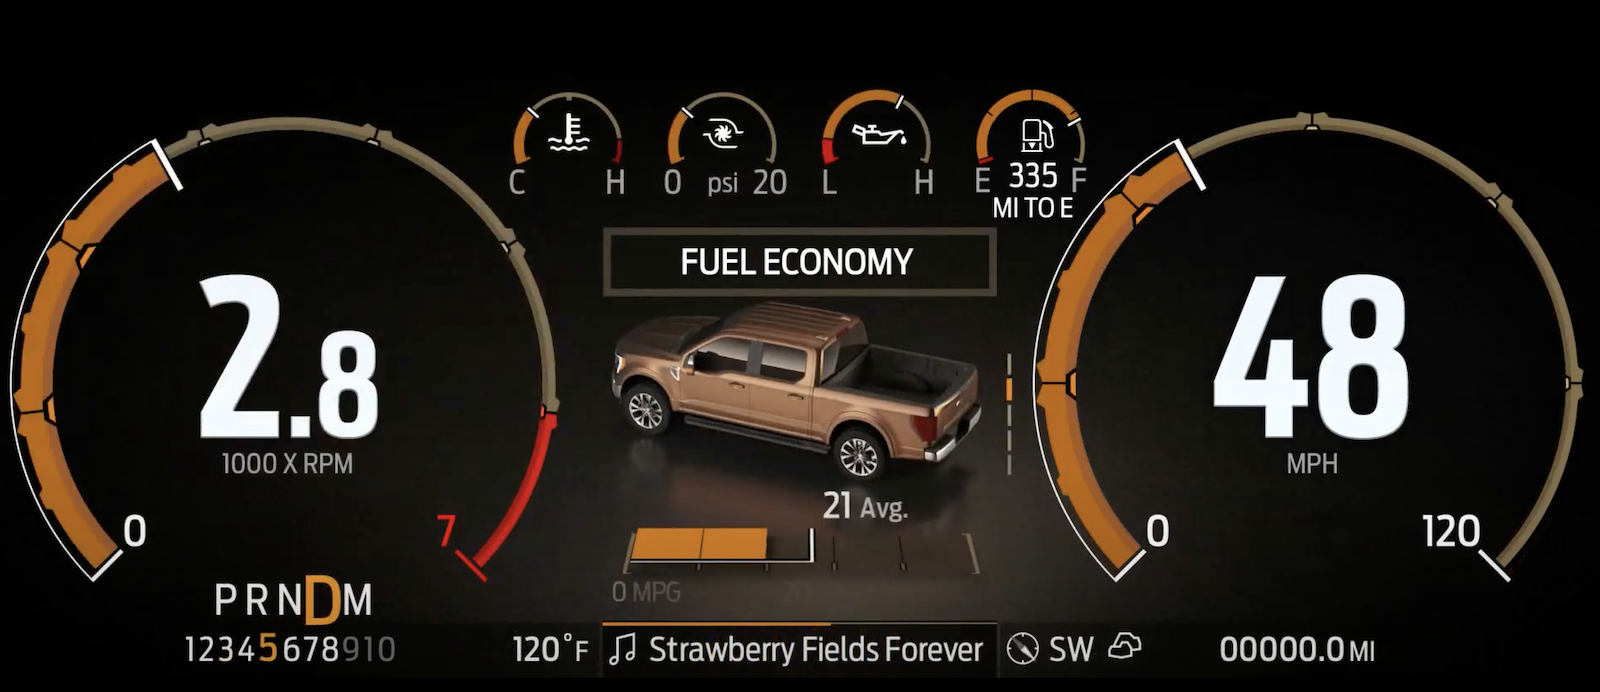 ford-f-150-digital-gauges-instrument-display-1-png.png